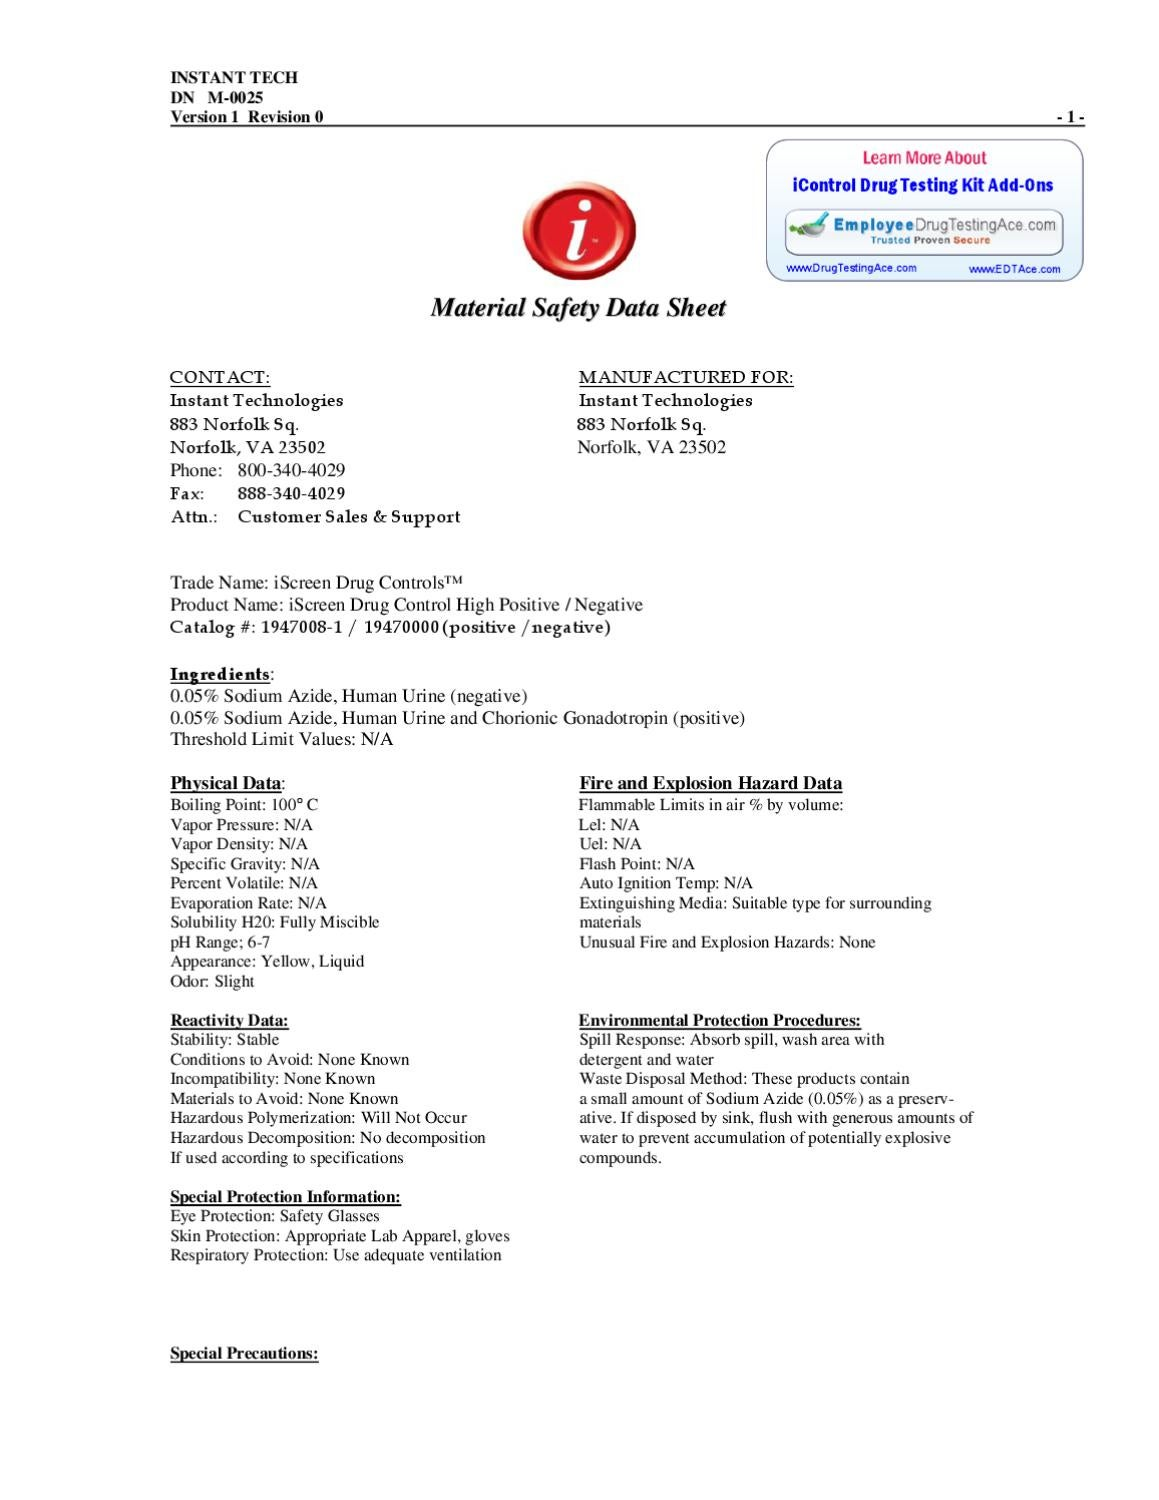 iControls Material Safety Data Sheet (MSDS) Employment Drug